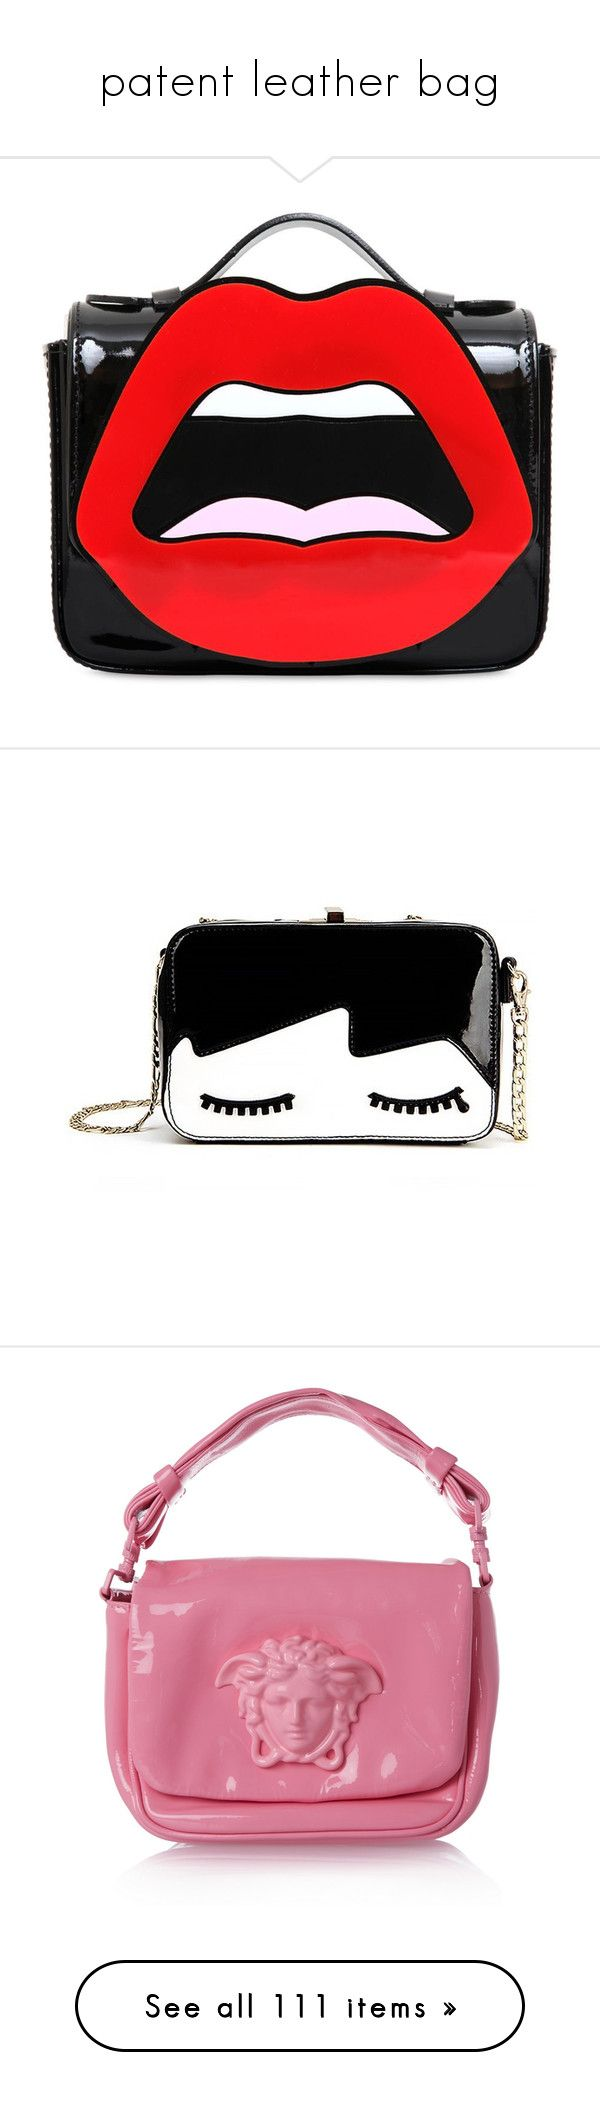 """""""patent leather bag"""" by cattrina-k ❤ liked on Polyvore featuring bags, handbags, shoulder bags, purses, bolsas, clutches, handbags shoulder bags, red patent handbag, red shoulder handbags and red patent leather handbag"""